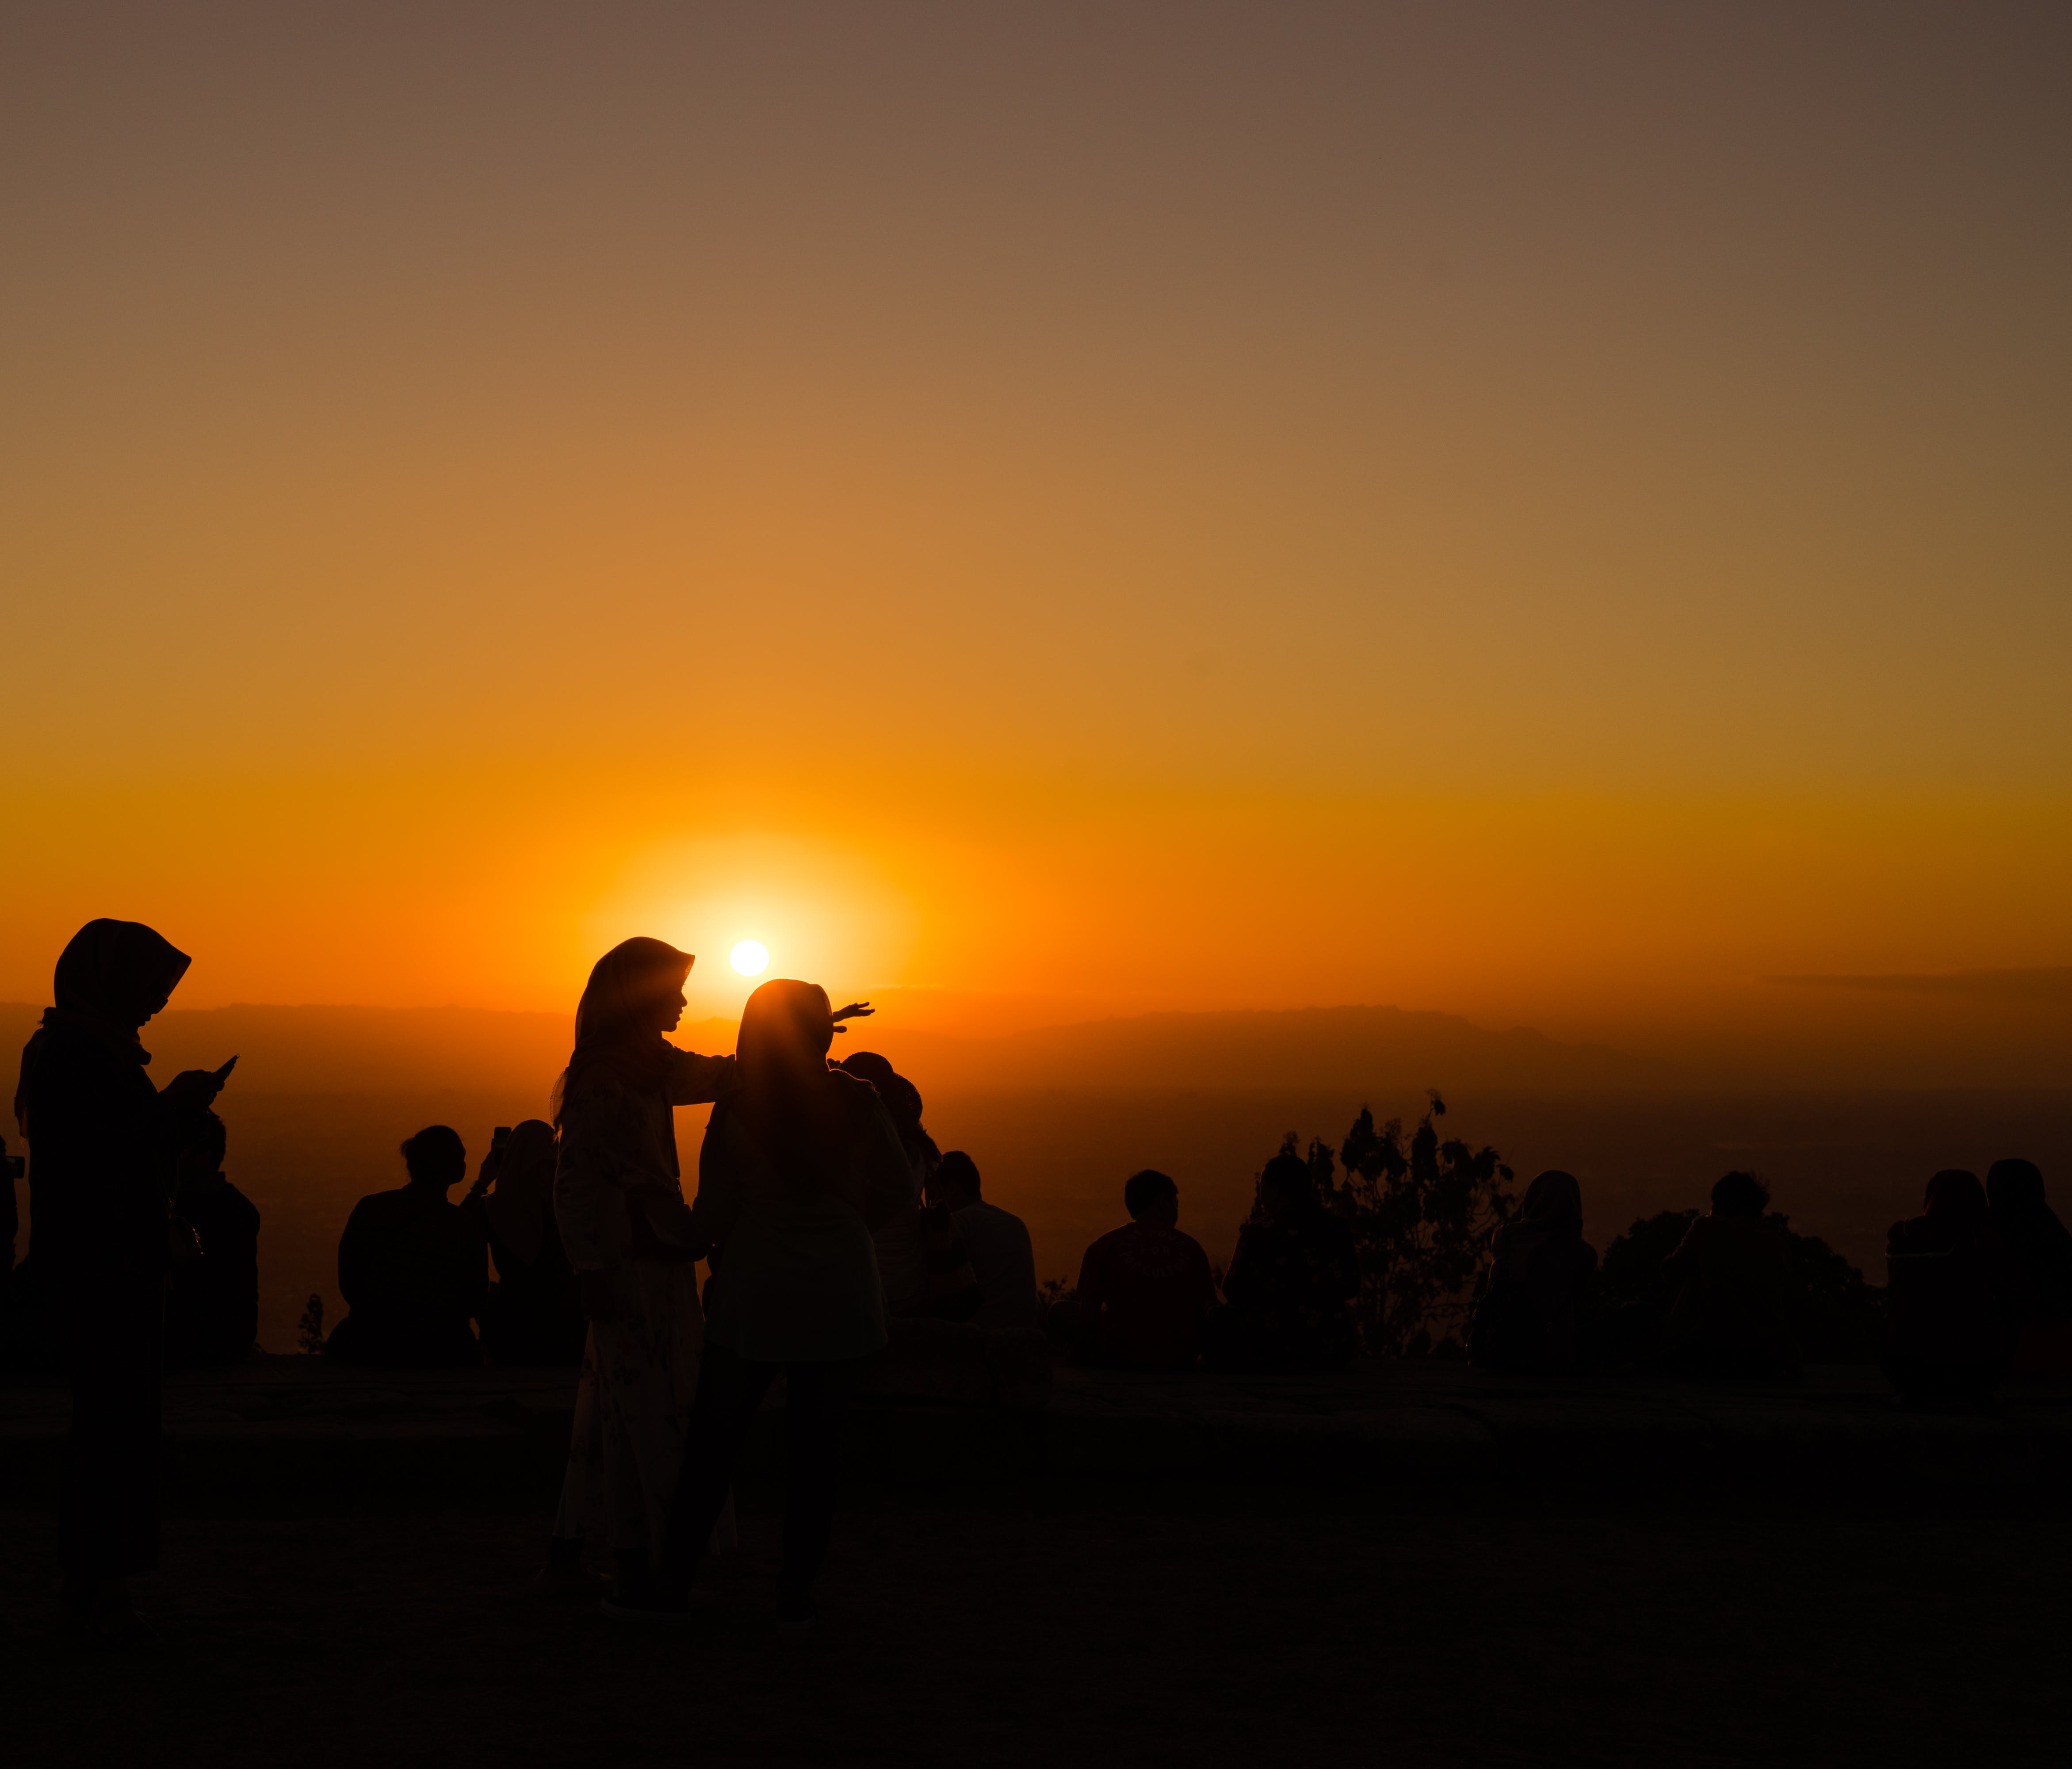 Silhouette Photograph of Several People during Golden Hour